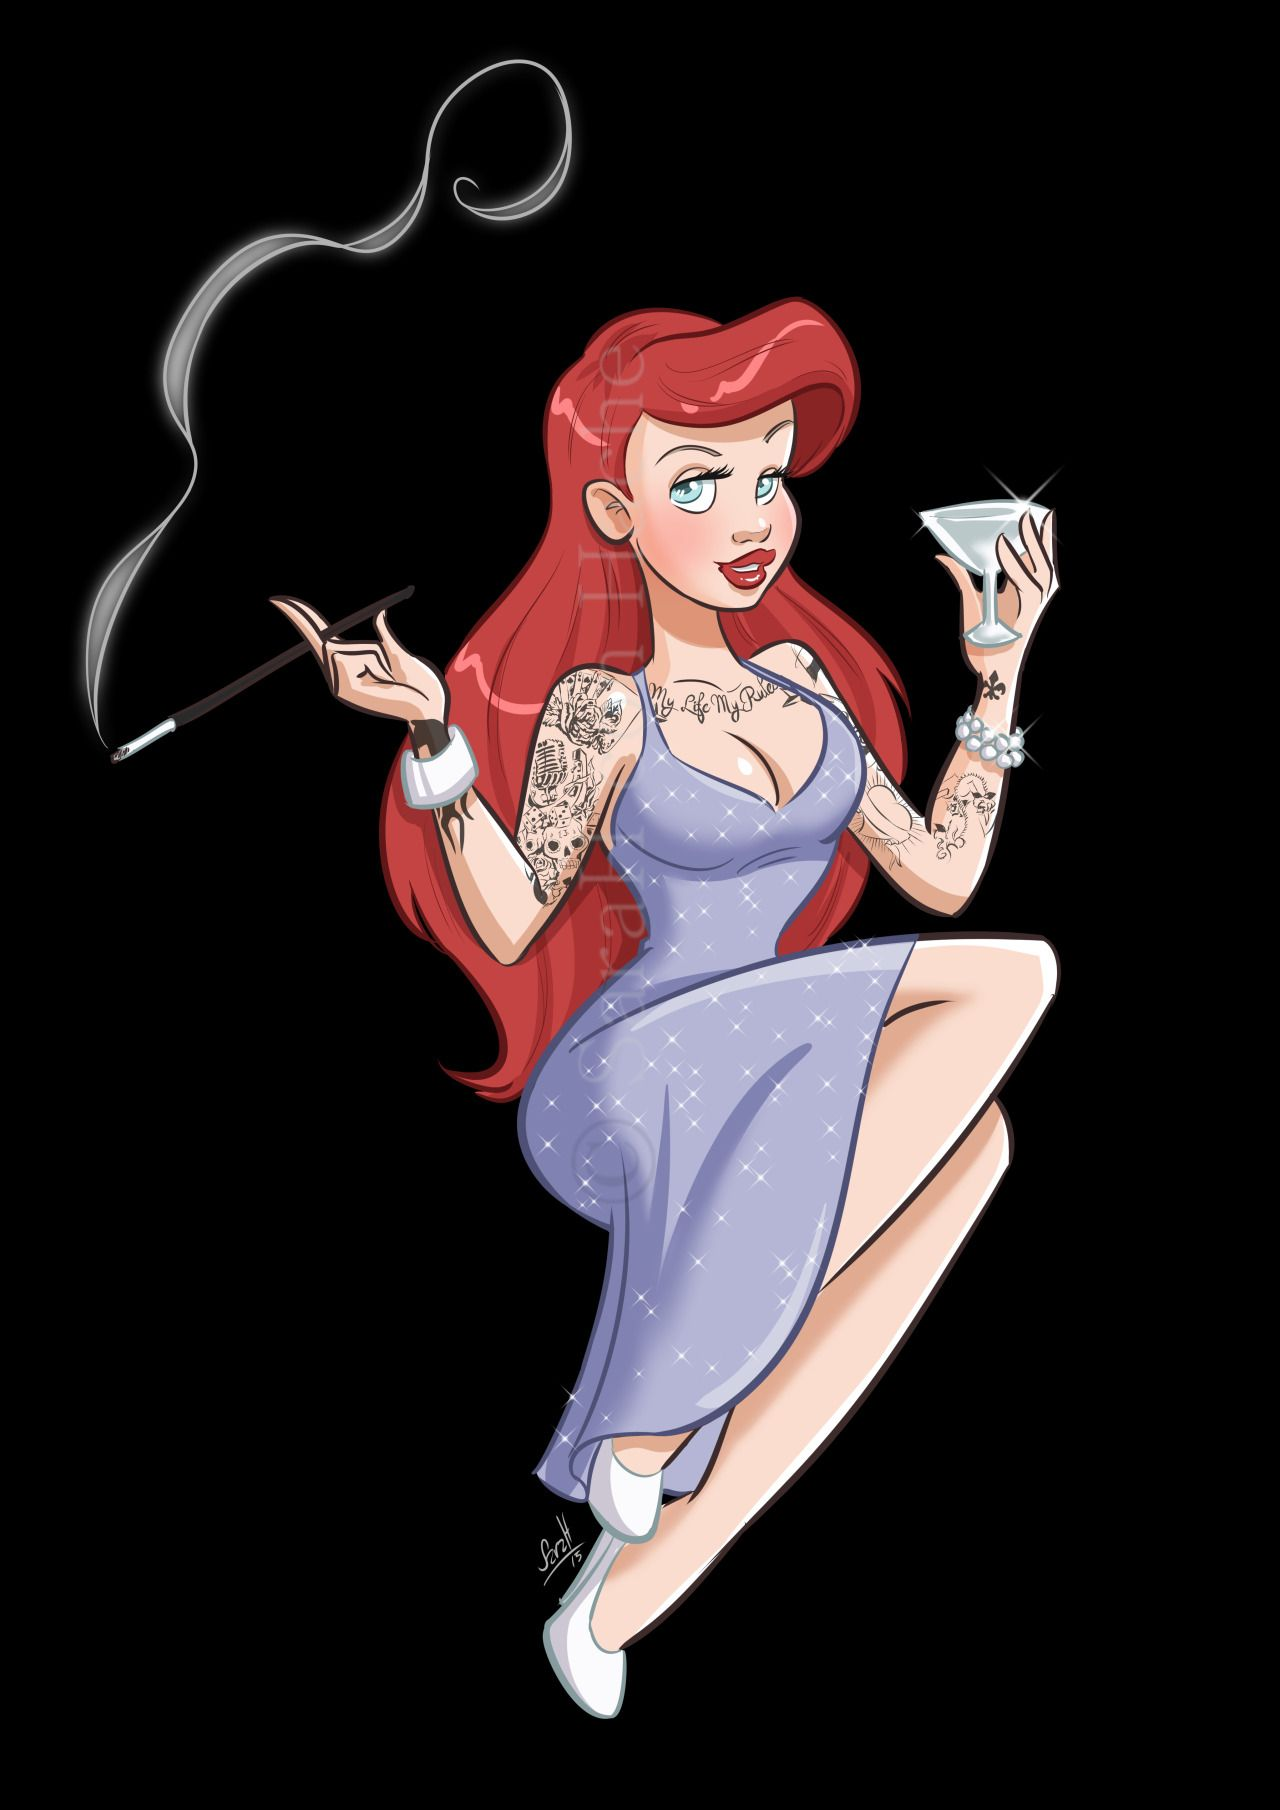 Arielle with tattoos (little mermaid version)